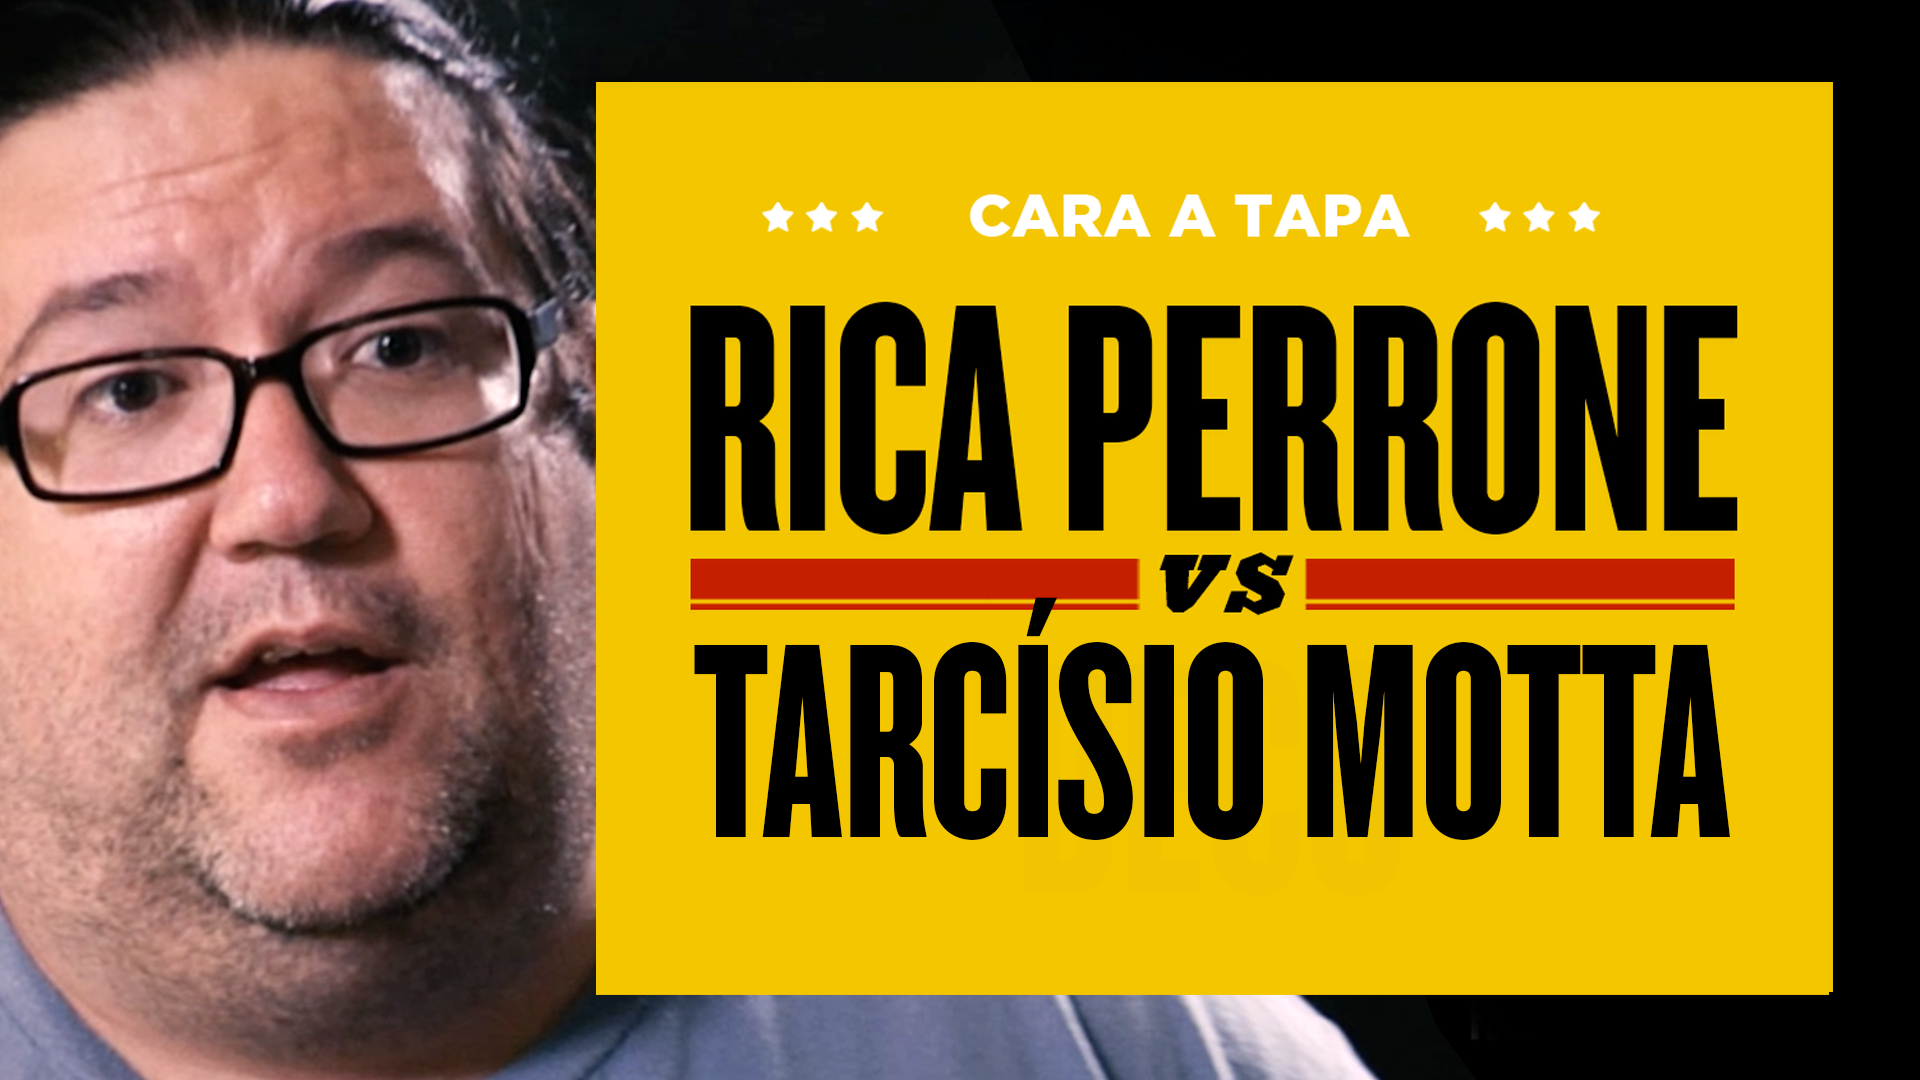 Photo of Cara a Tapa – Tarcísio Motta